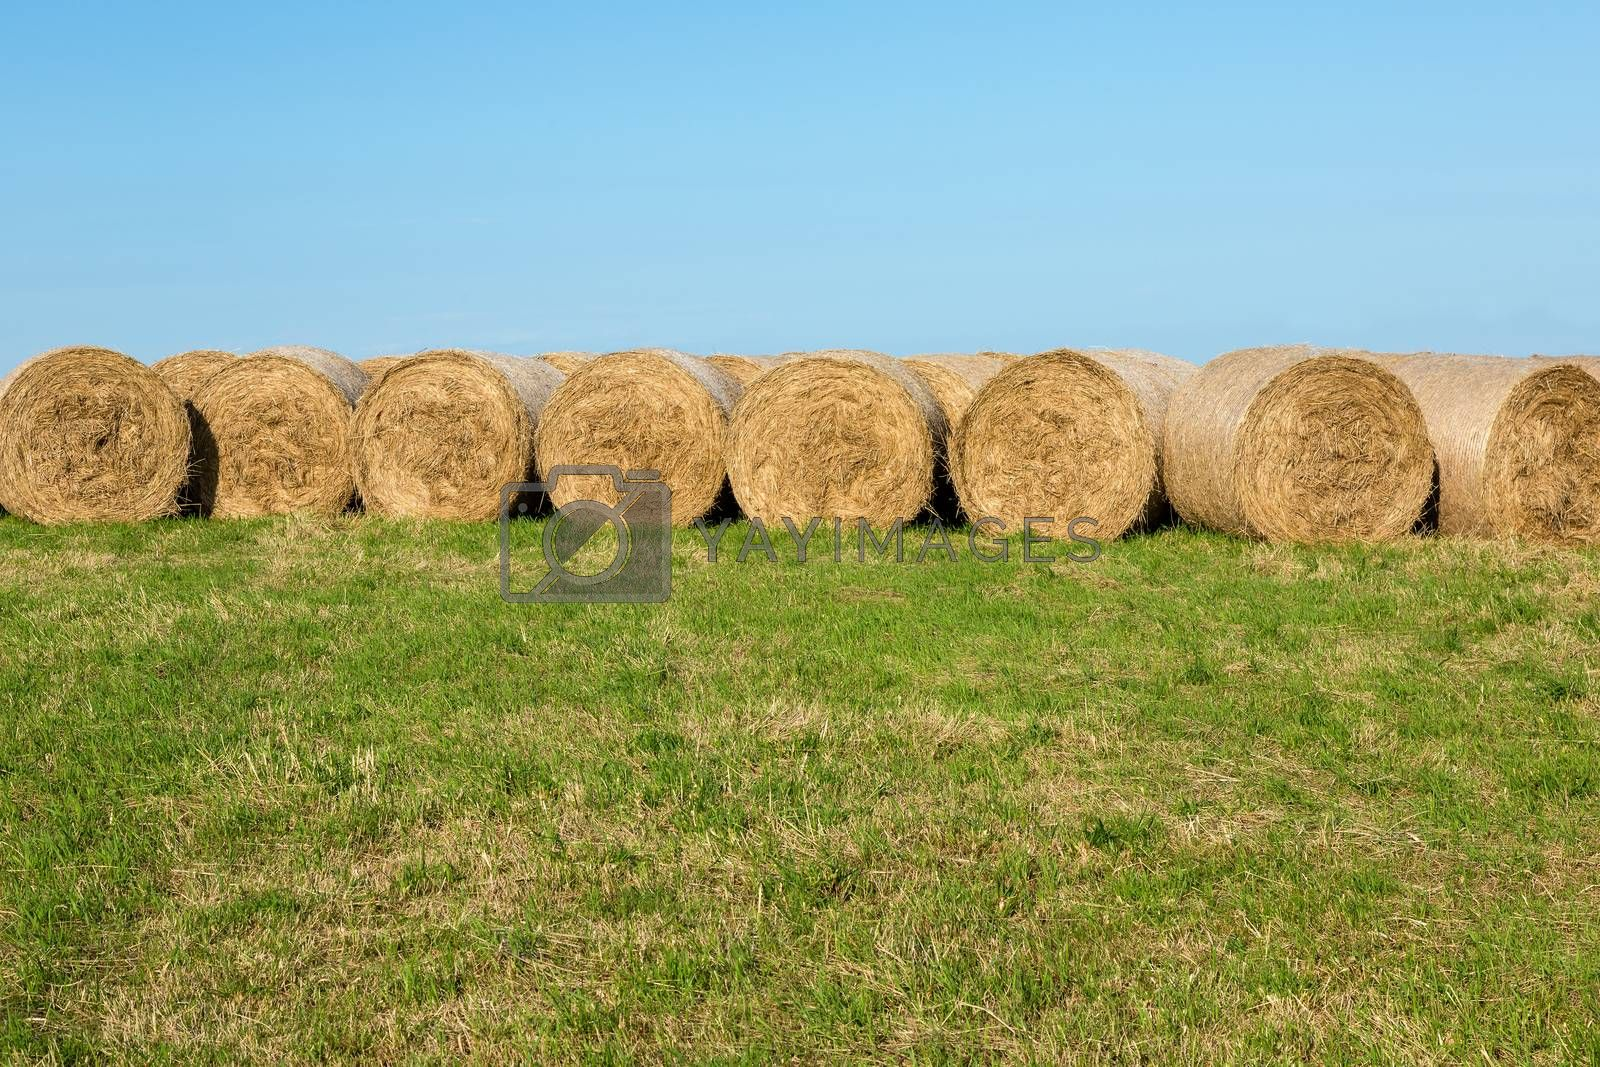 Hay Bales in Countryside Afternoon Sunshine against Horizon Landscape